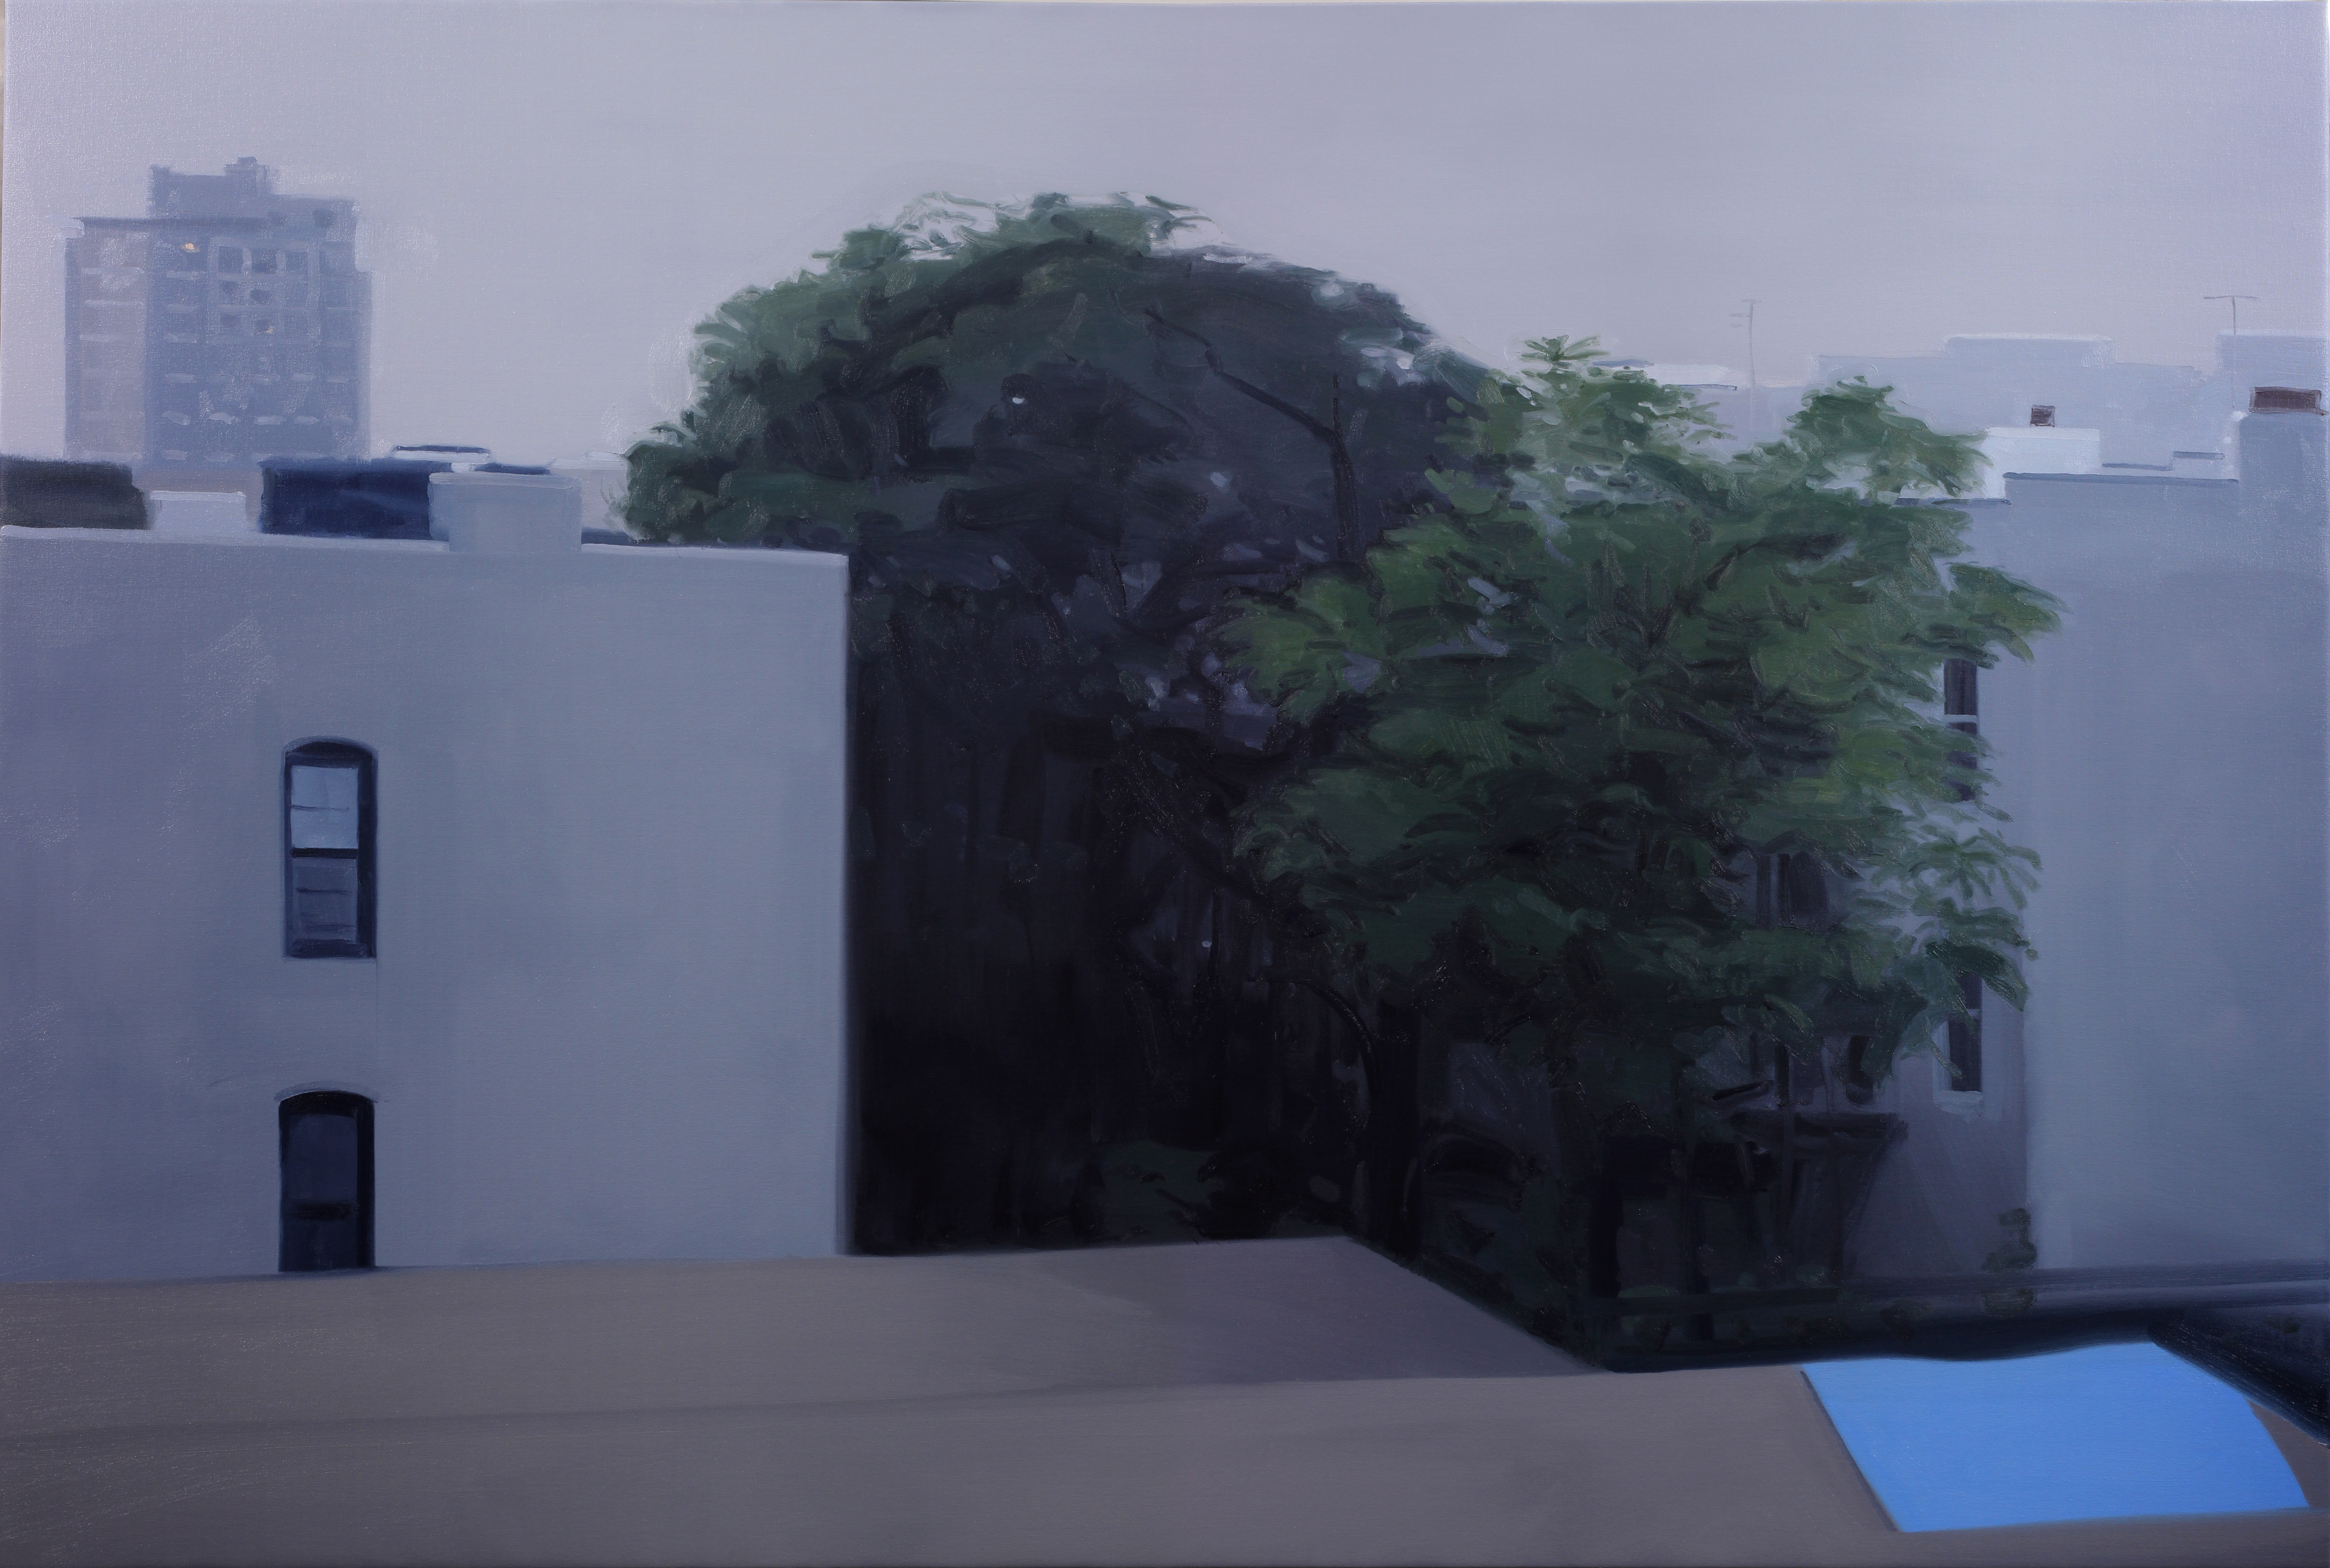 Nathaniel Robinson, Untitled, 2020, oil on canvas, 48h x 72w in.